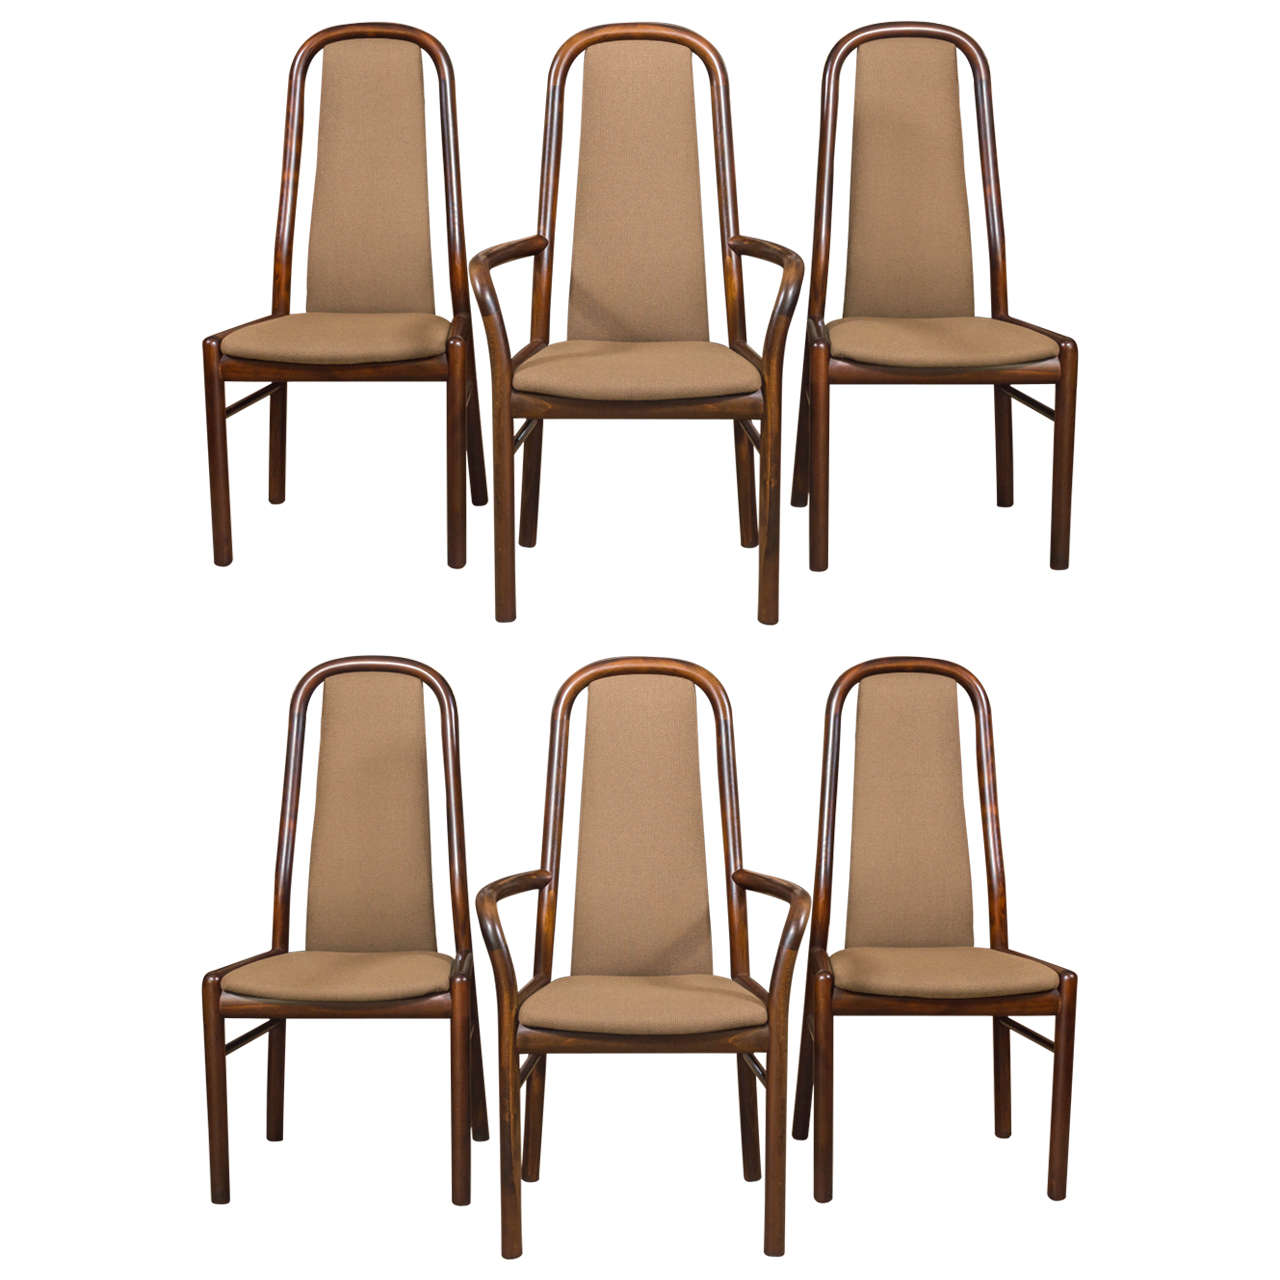 Danish Dining Room Furniture: Six Danish Dining Chairs By Boltinge At 1stdibs